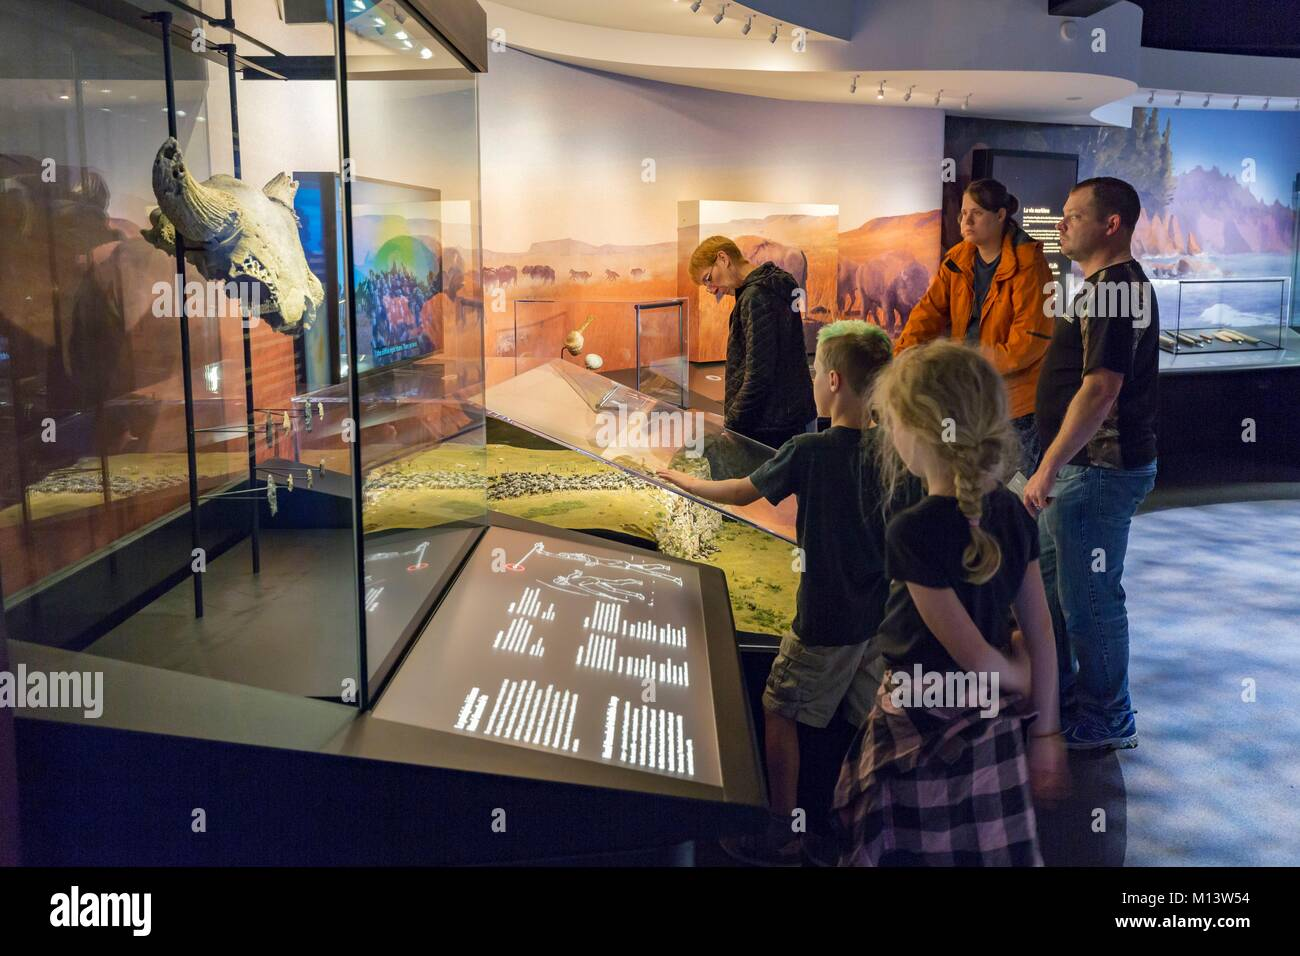 Canada, Province of Quebec, Outaouais, City of Gatineau, Canadian Museum of History, new galleries dedicated to - Stock Image